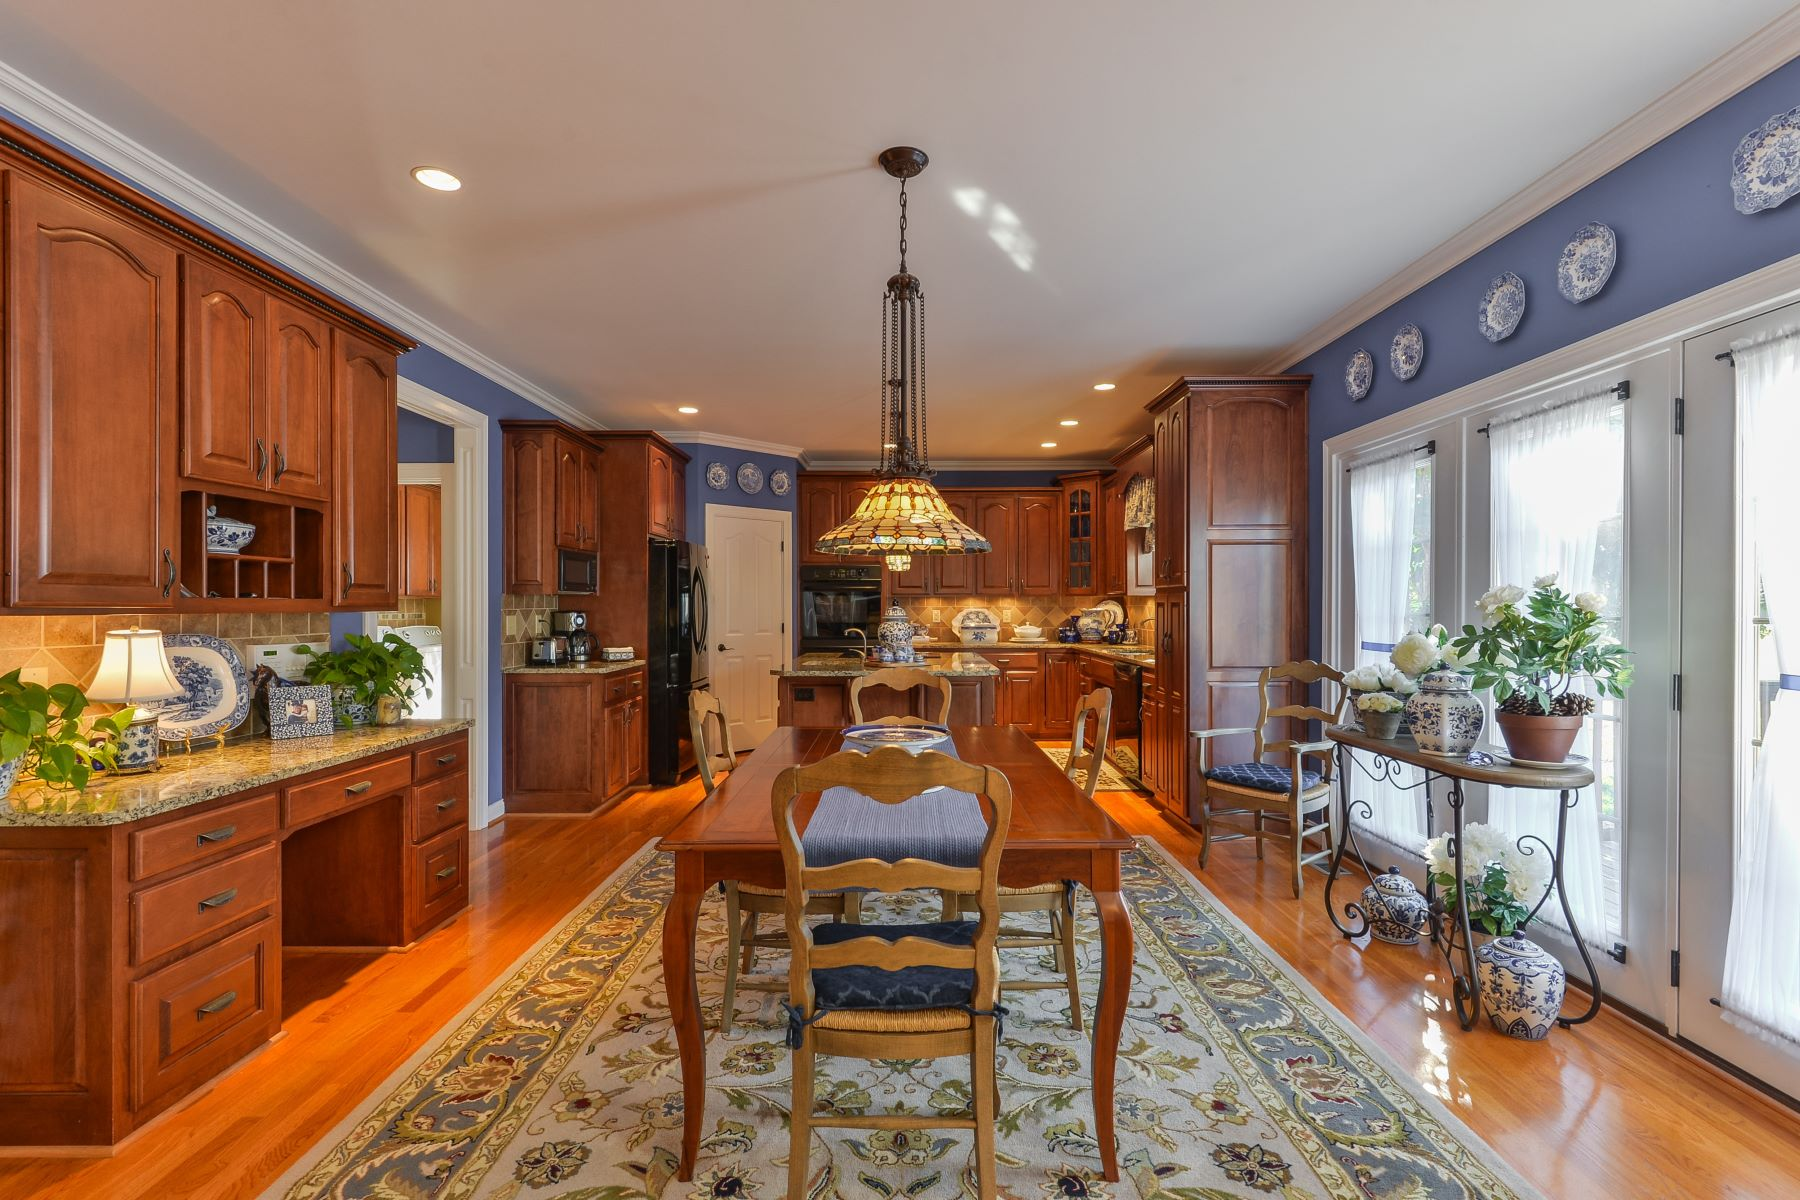 Additional photo for property listing at 13304 Ridgemoor Dr 13304 Ridgemoor Drive Prospect, Kentucky 40059 United States